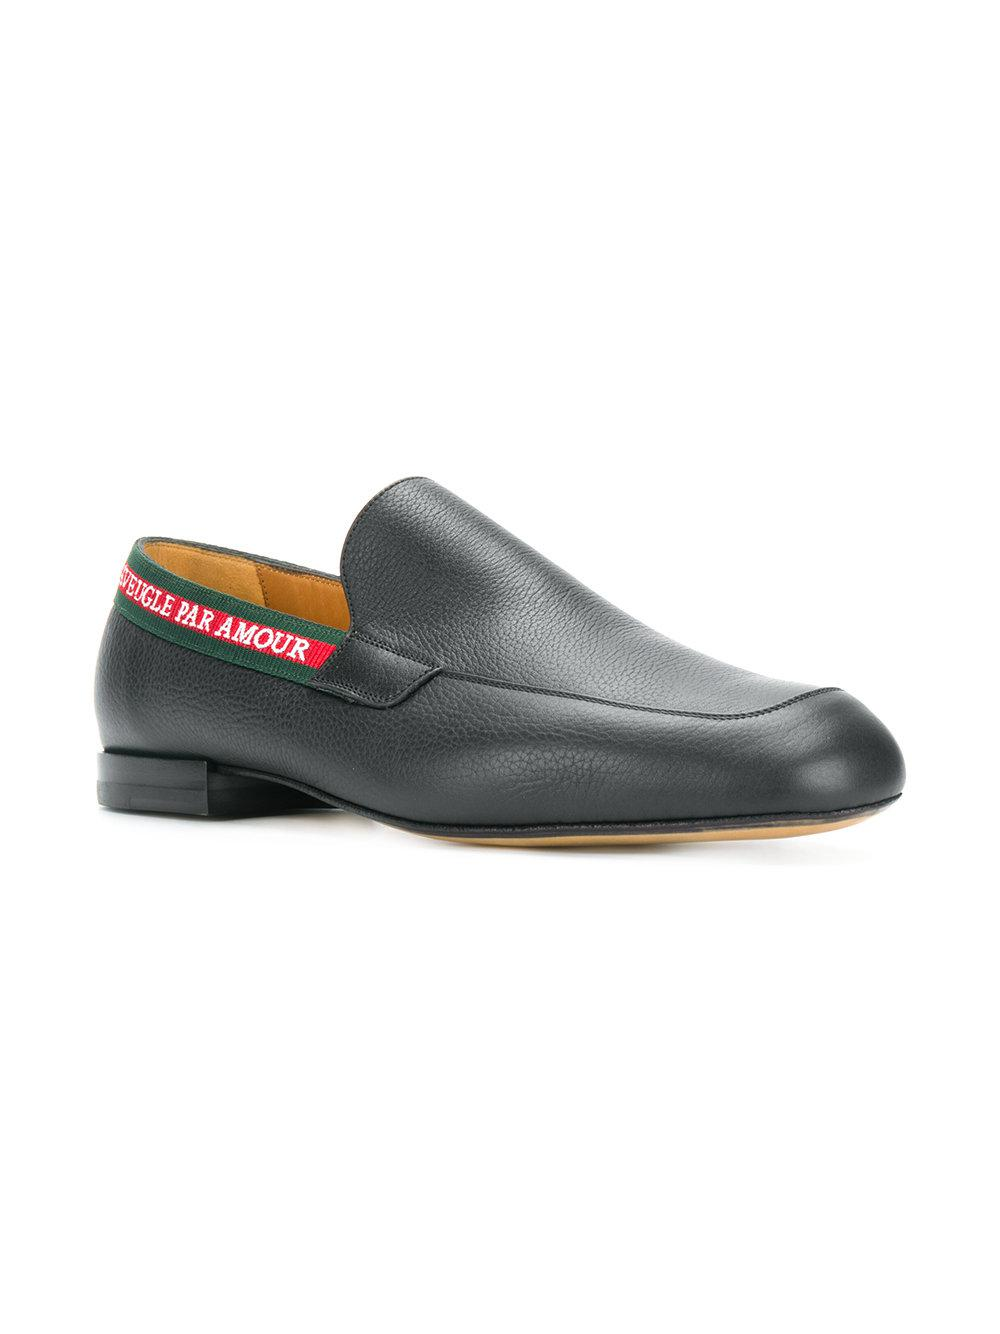 c43491c9701f Gucci L aveugle Par Amour Loafers in Black for Men - Save 53% - Lyst